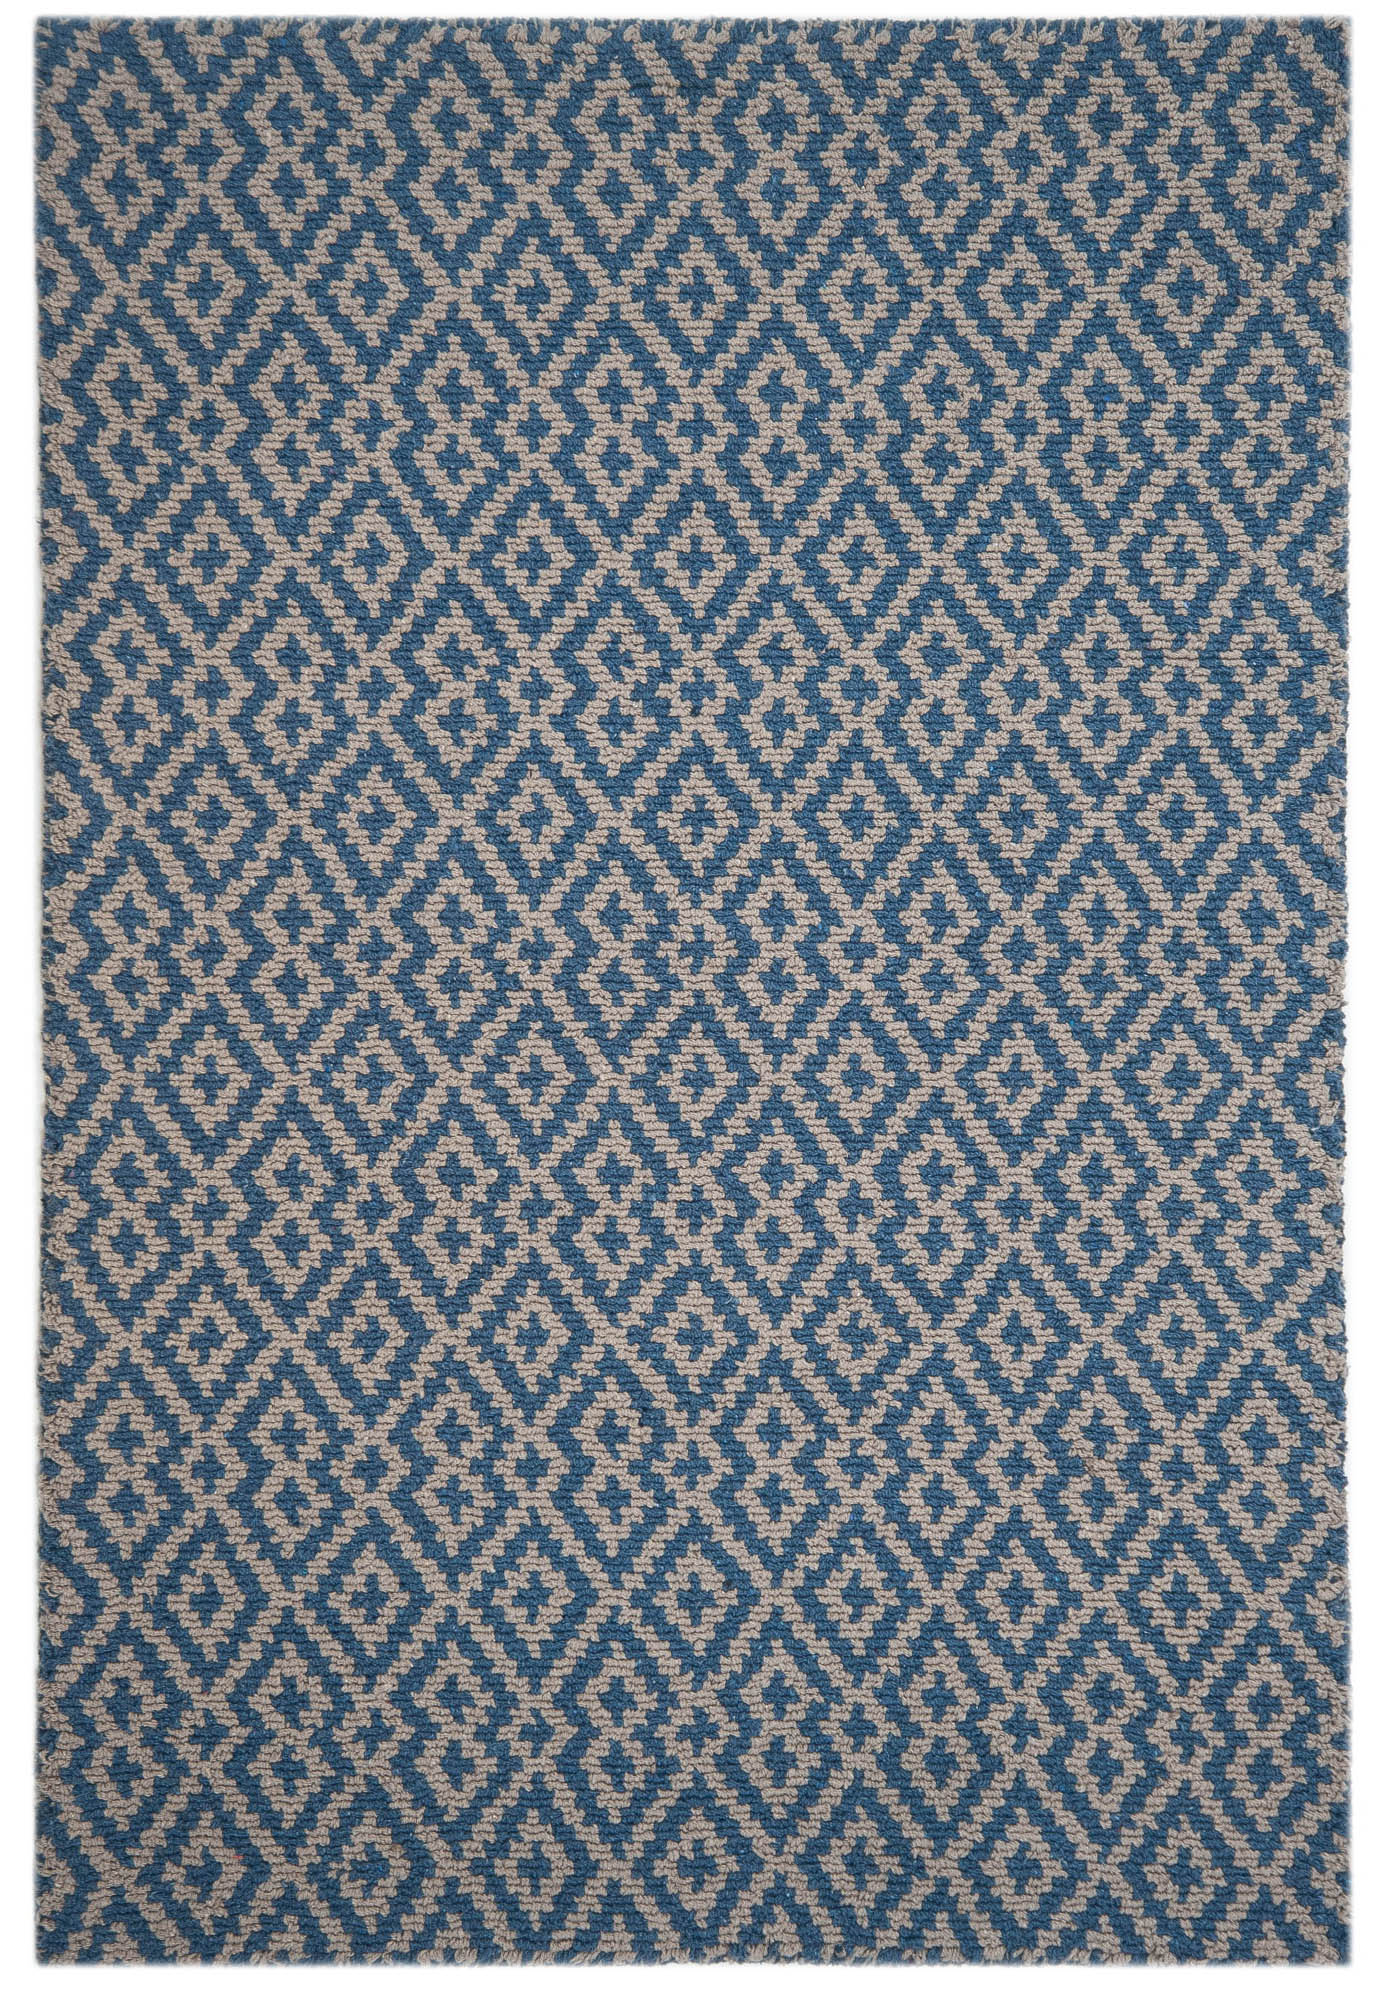 Barcelona Denim Taupe Eco Cotton Loom Hooked Rug Hook Amp Loom